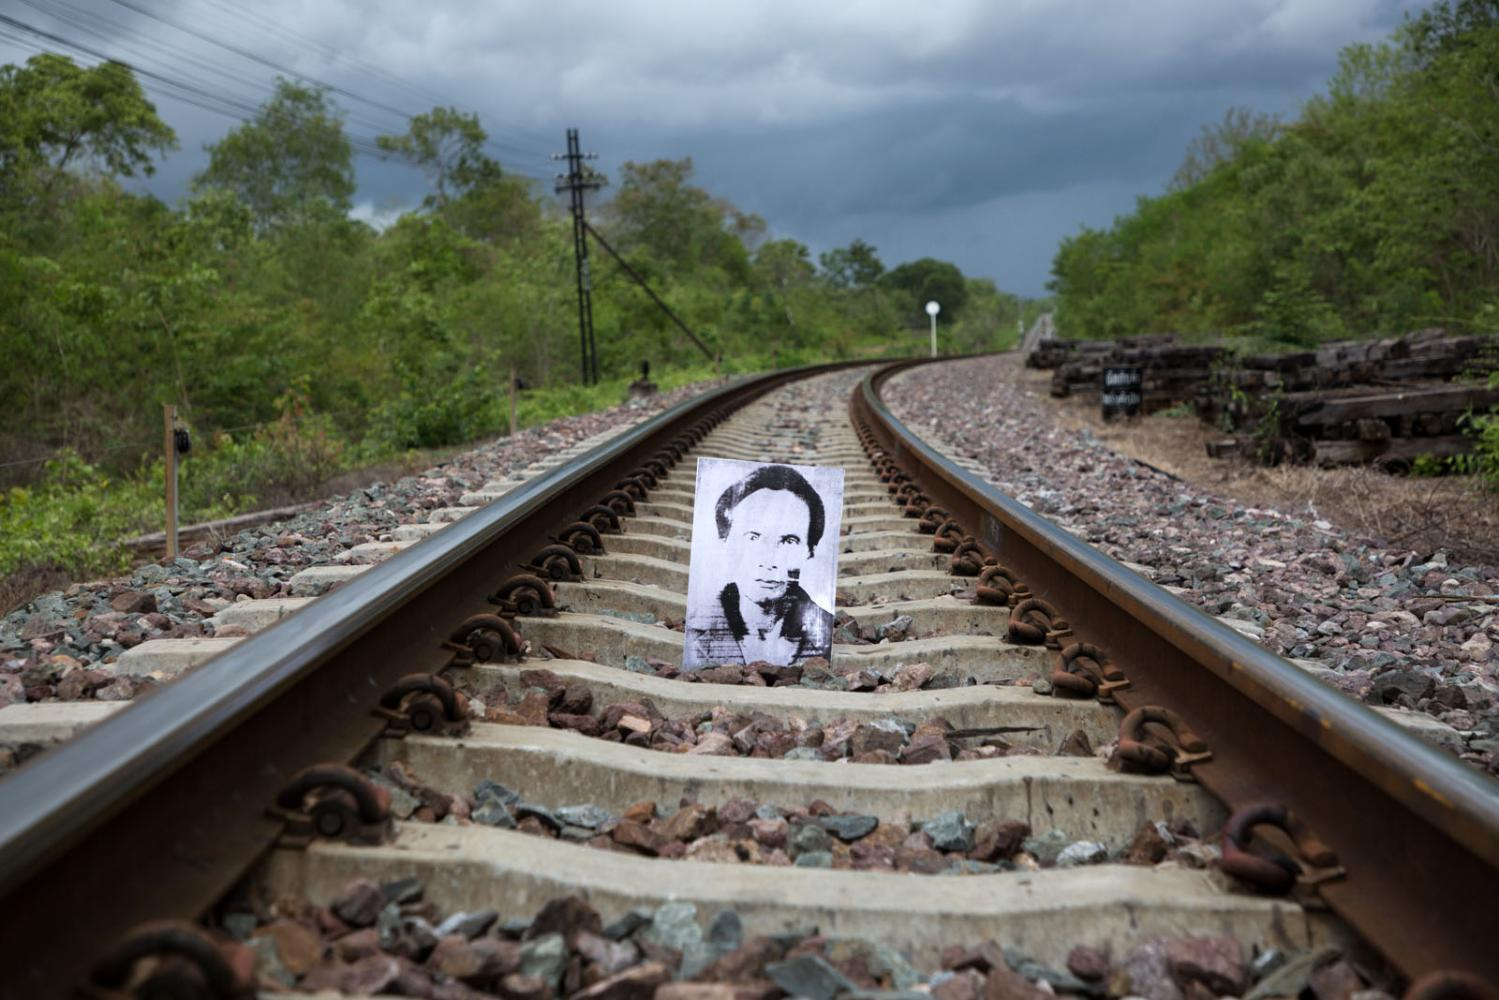 Pati Punu Dokjimu, an ethnic Karen, committed suicide on 5 March 1997 by jumping from a Bangkok -  Chiang Mai train just after leaving Mae Ta Train Station in Lampang Province. His suicide was triggered by the stress accumulated during the tense negotiation with the then Minister of Agriculture and the harsh comments he received. A core member of the Network of Northern Peasants and the Assembly of the Poor, Pati Punu's death prompted the government to agree to a resolution to verify and recognize the right of people who dwell in the forest.